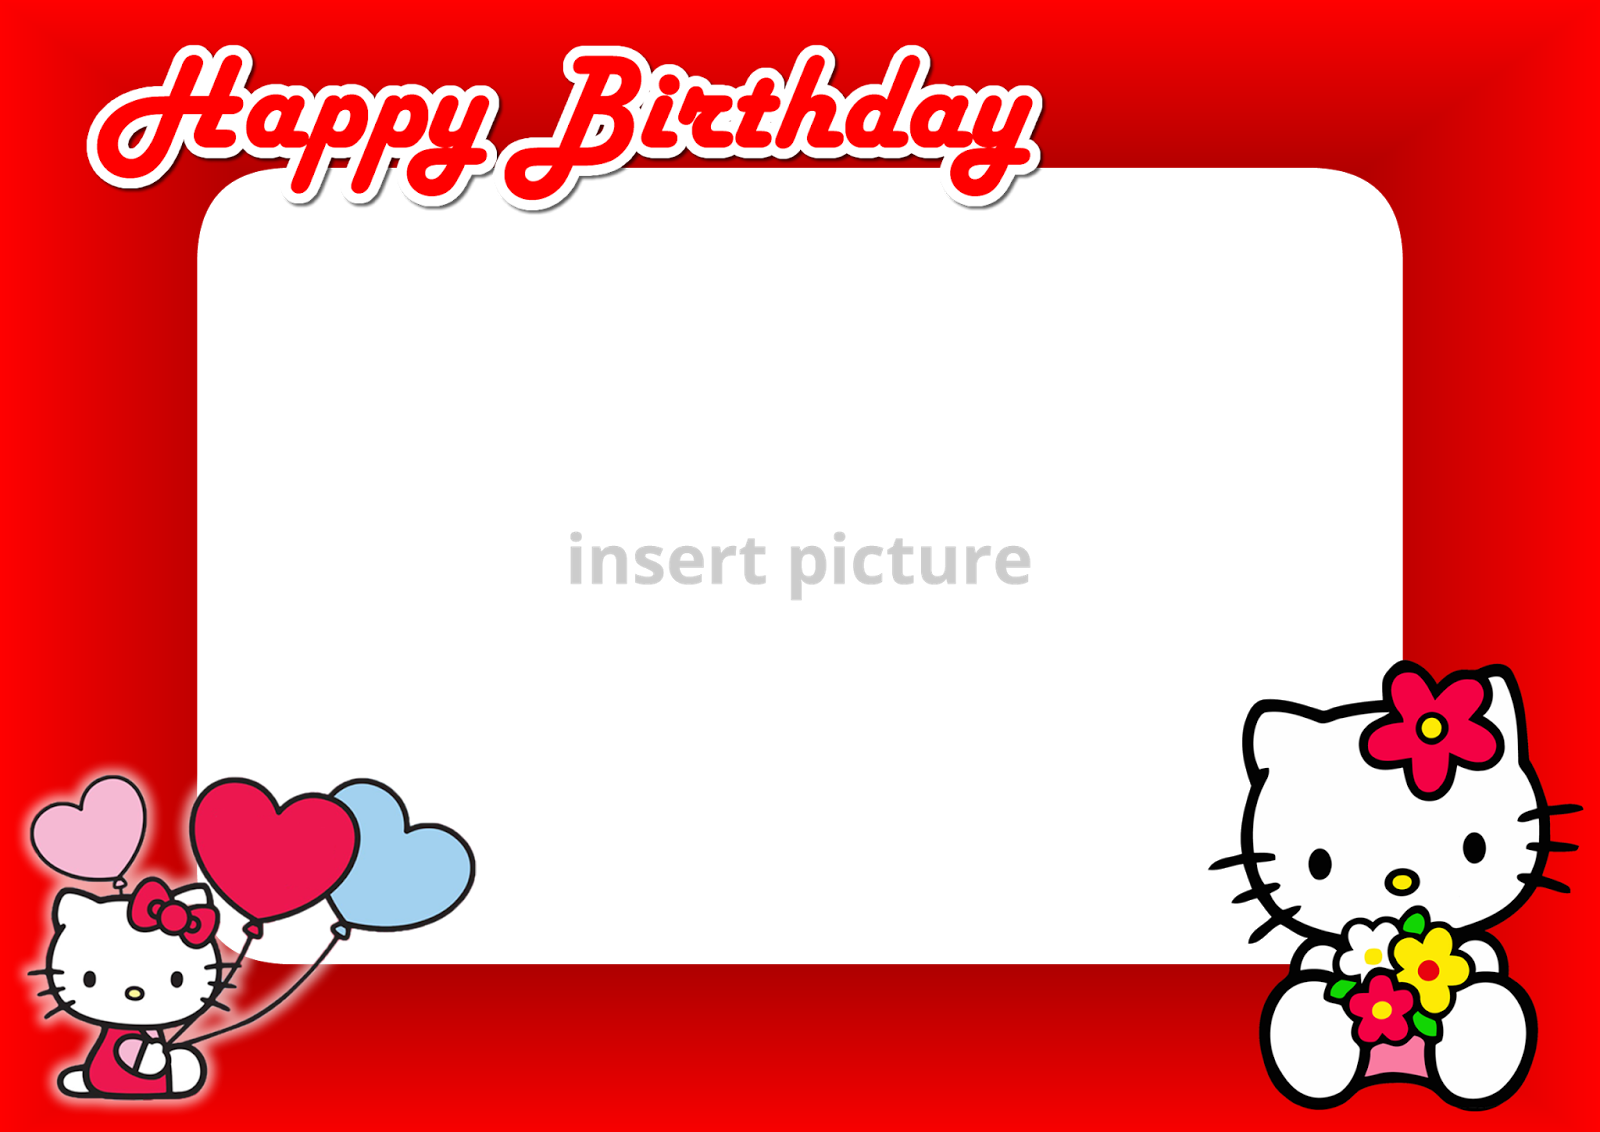 Famous Happy Birthday Frames Free Download Image - Picture Frame ...